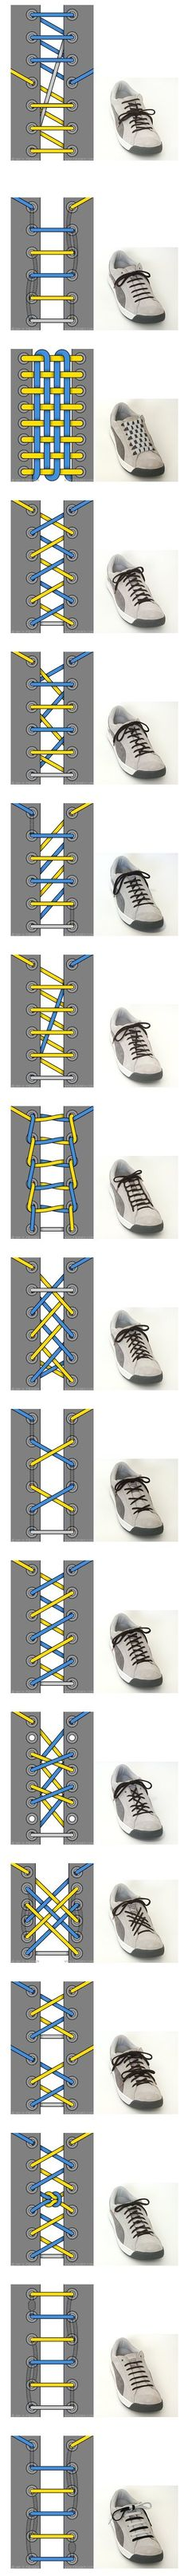 Might be useful- different ways to lace your shoes :)